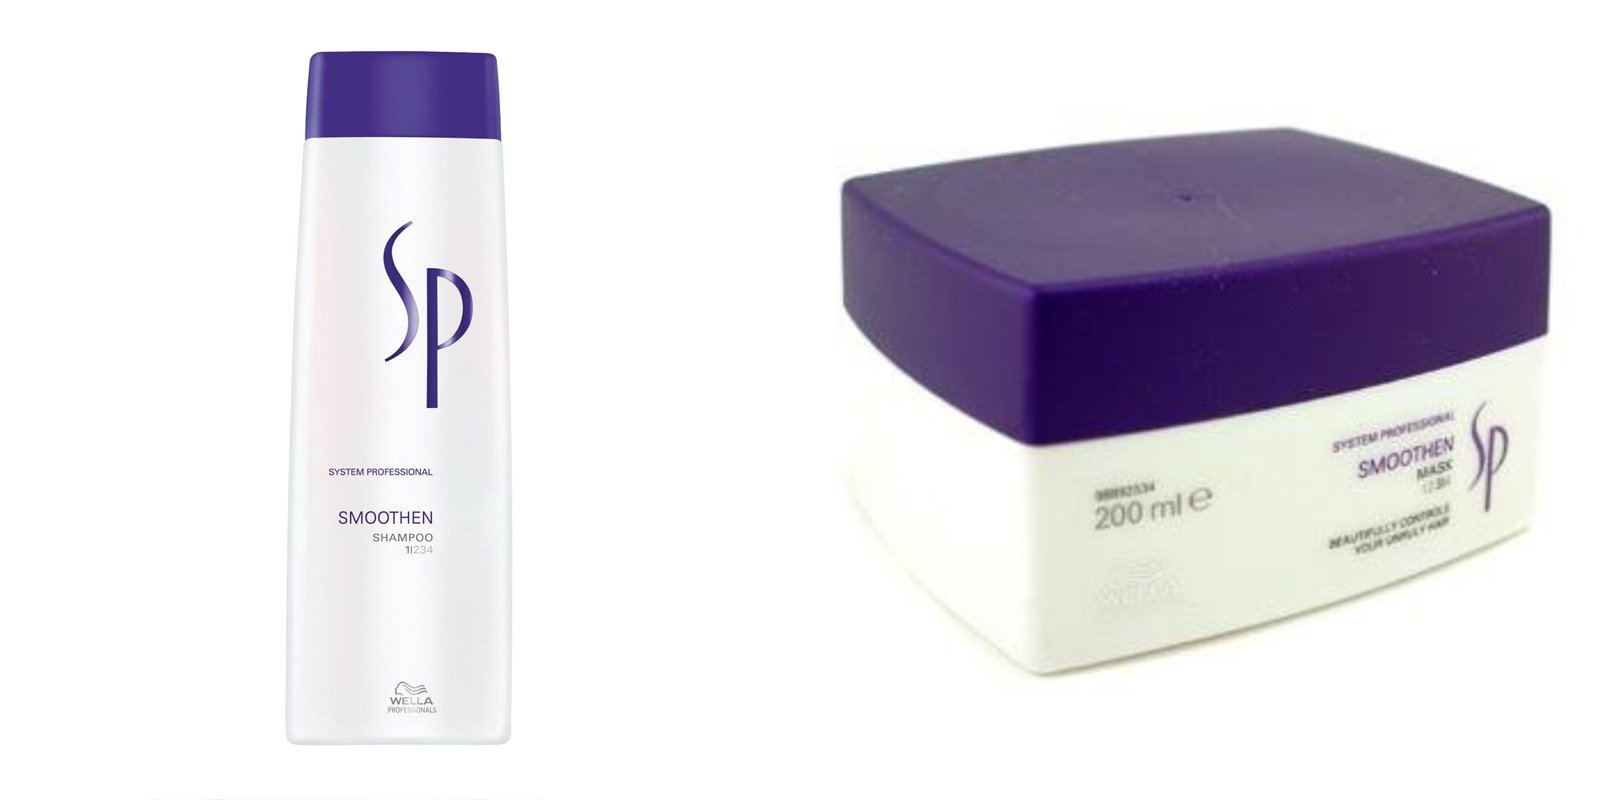 Wella System Professional Sp Smoothen Shampoo 250ML & Mask 200 ML Combo Pack